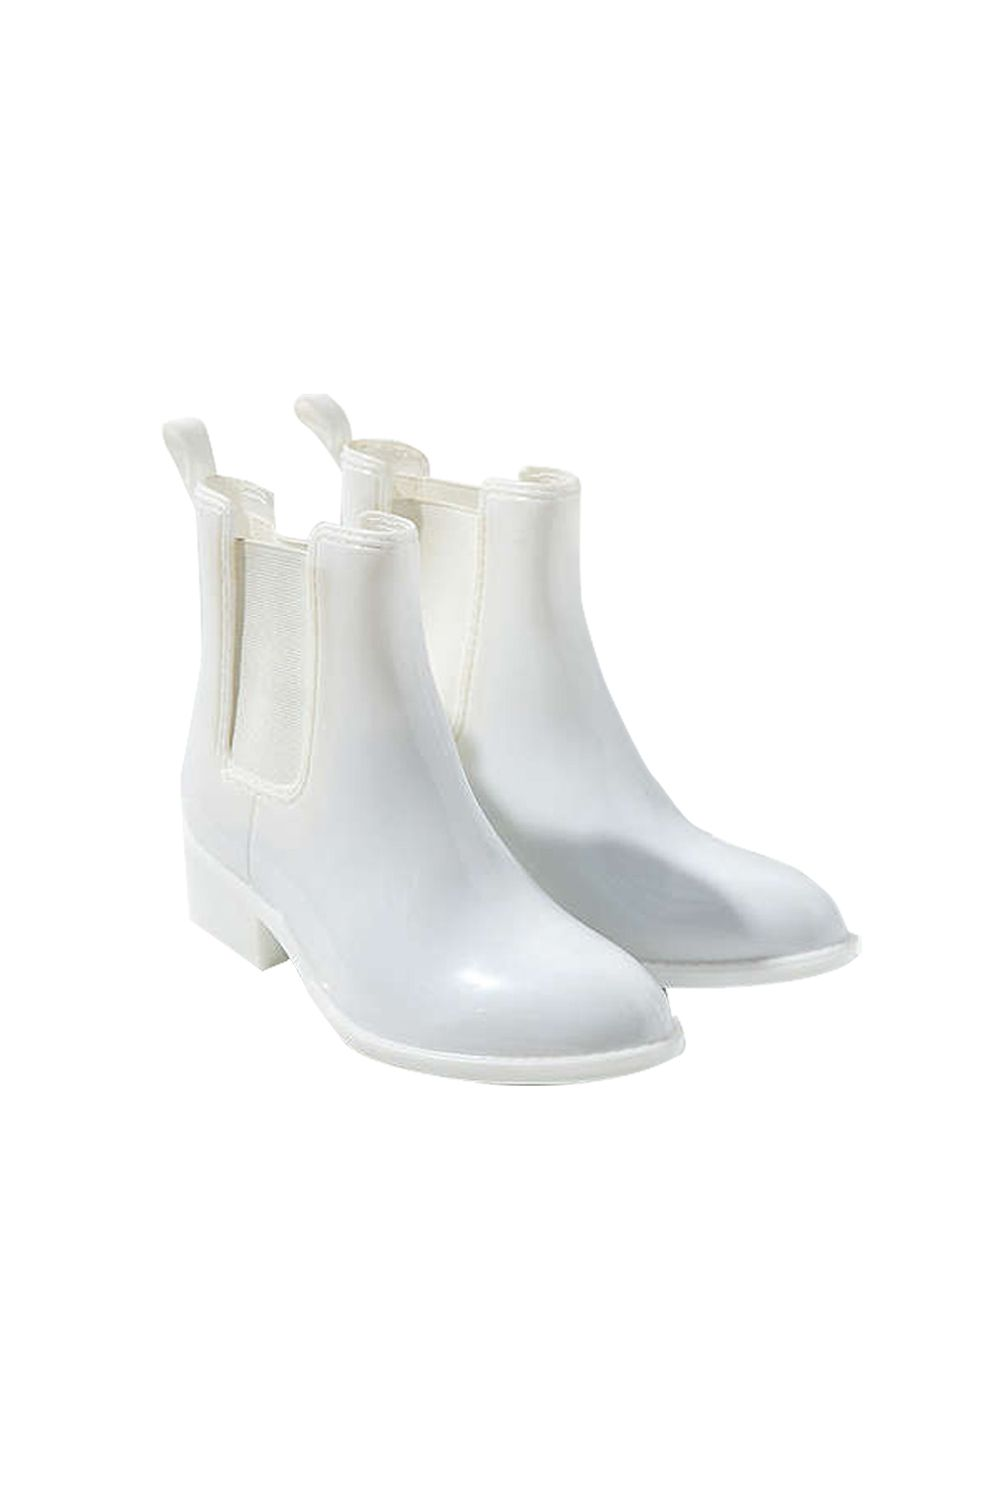 "<p>And a white boot you can get really muddy at a festival this summer. </p><p><em data-redactor-tag=""em"" data-verified=""redactor"">Jeffrey Campbell, $55</em><span class=""redactor-invisible-space"" data-verified=""redactor"" data-redactor-tag=""span"" data-redactor-class=""redactor-invisible-space""><em data-redactor-tag=""em"" data-verified=""redactor""></em></span><br></p><p><strong data-redactor-tag=""strong"" data-verified=""redactor"">BUY IT: <a href=""https://www.urbanoutfitters.com/shop/jeffrey-campbell-stormy-rain-boot-001?category=boots-for-women&color=010"" target=""_blank"">urbanoutfitters.com</a>.</strong></p>"